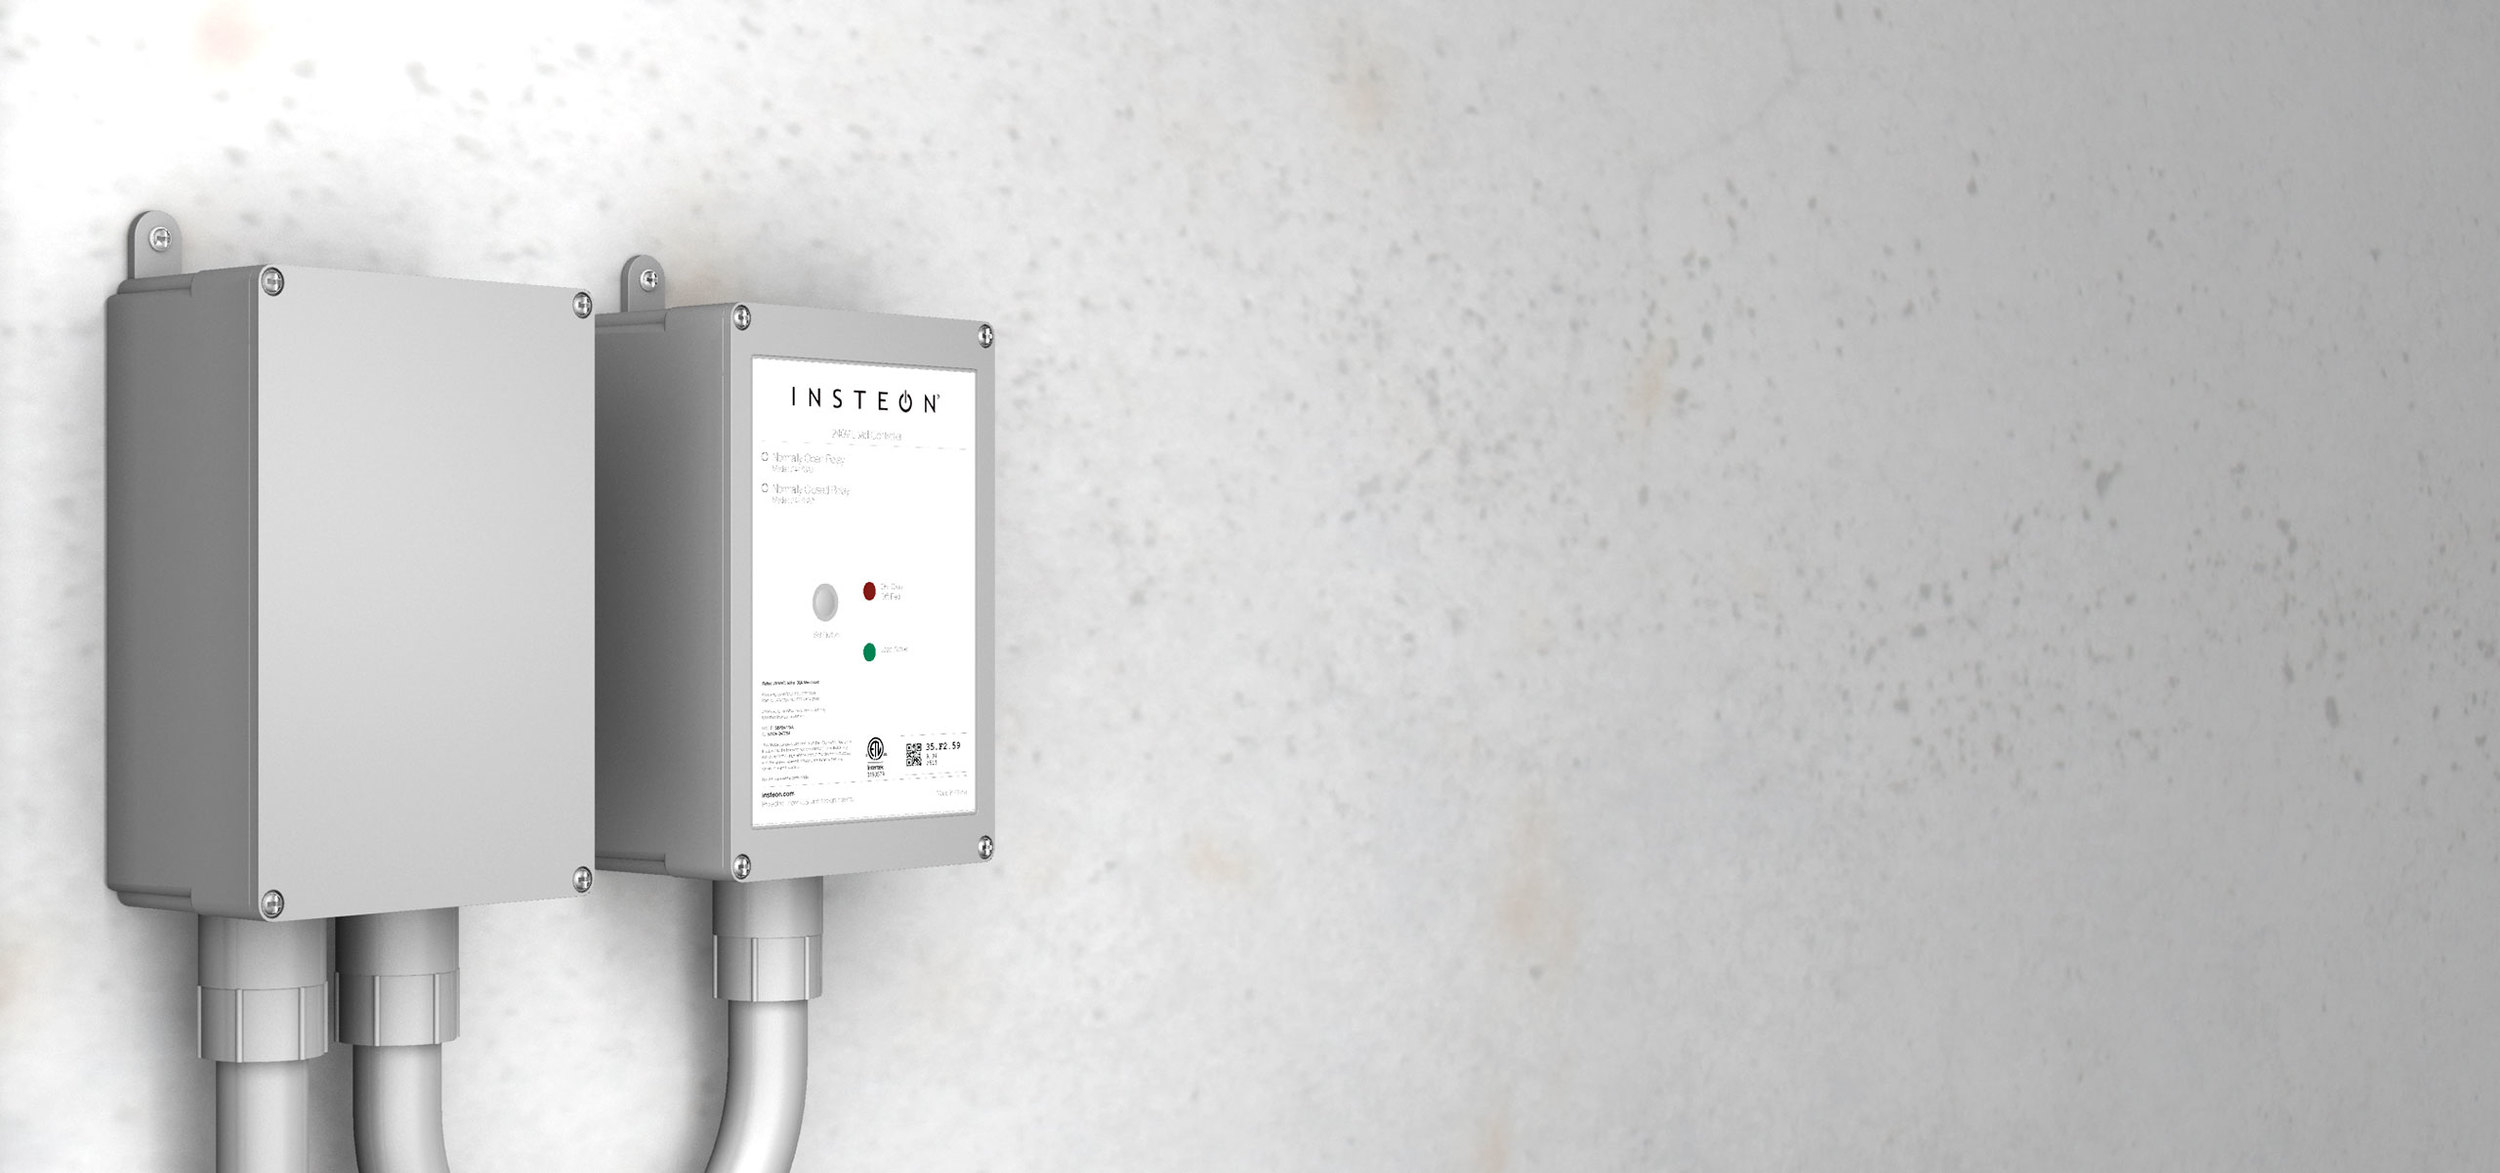 240v Load Controller Insteon Wiring Baseboard Heaters Canada